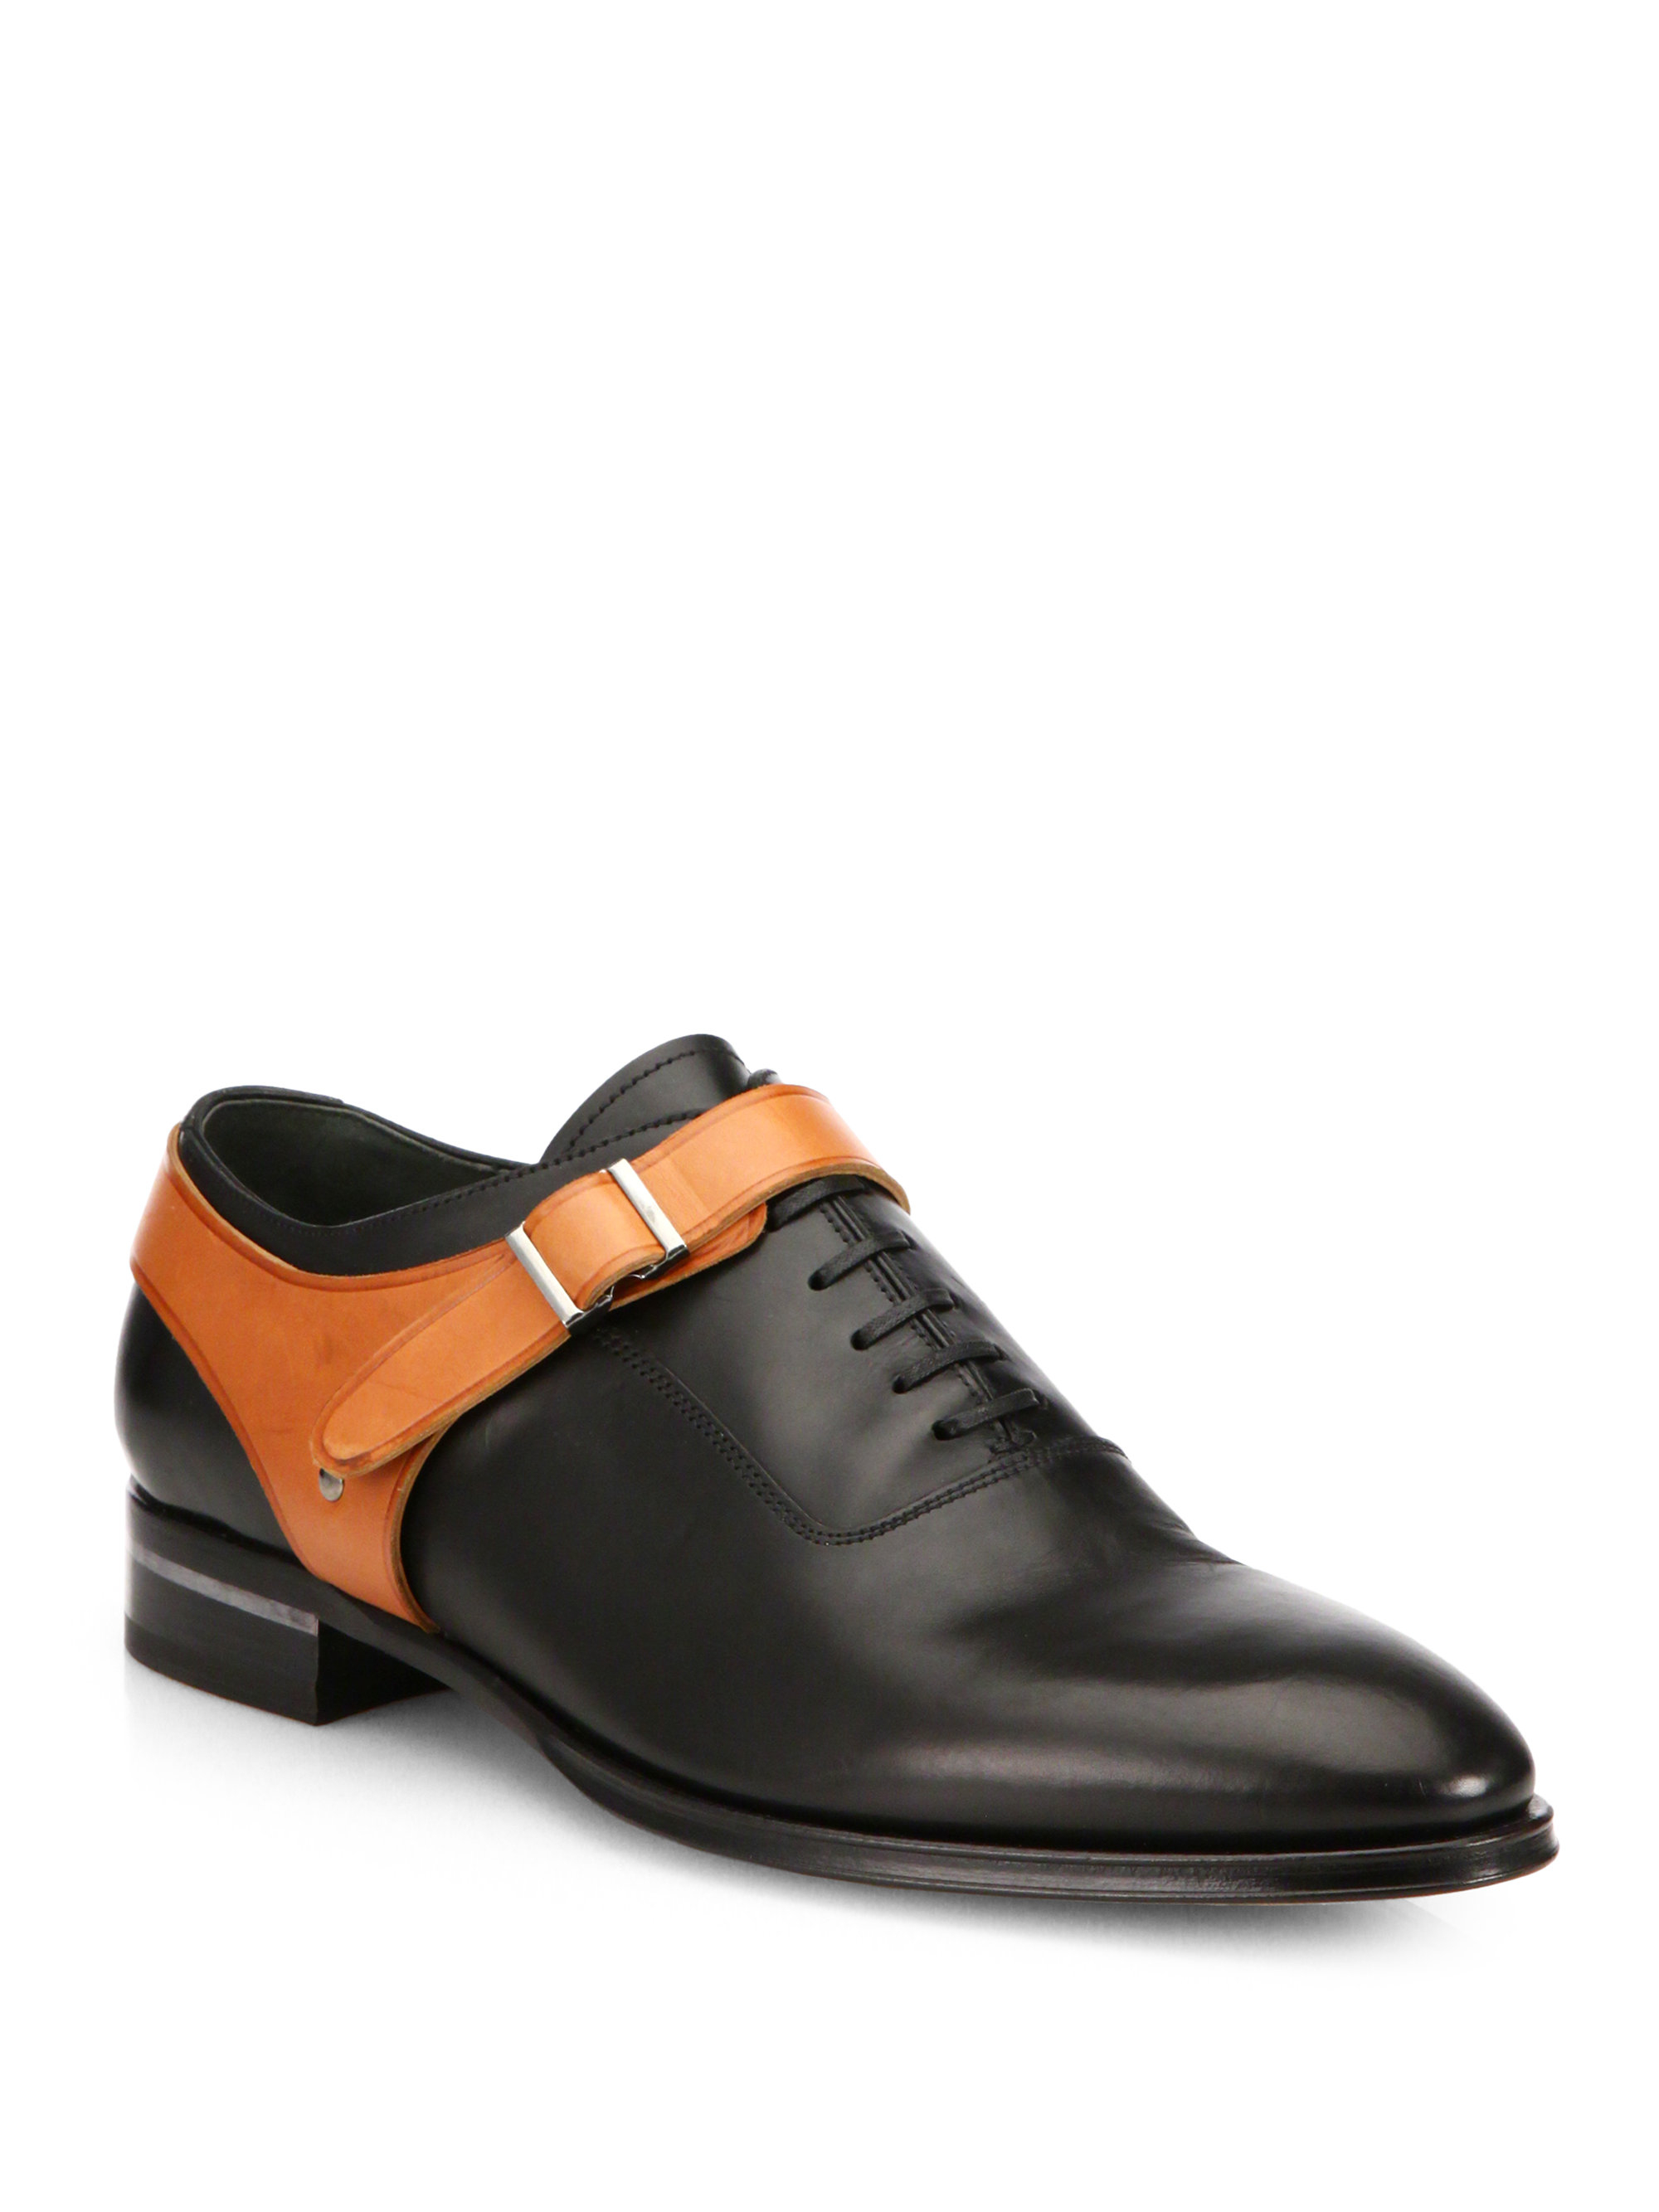 Lyst - Alexander McQueen Harness Leather Lace-Up Shoes in Black for Men bfd860ee1f38b